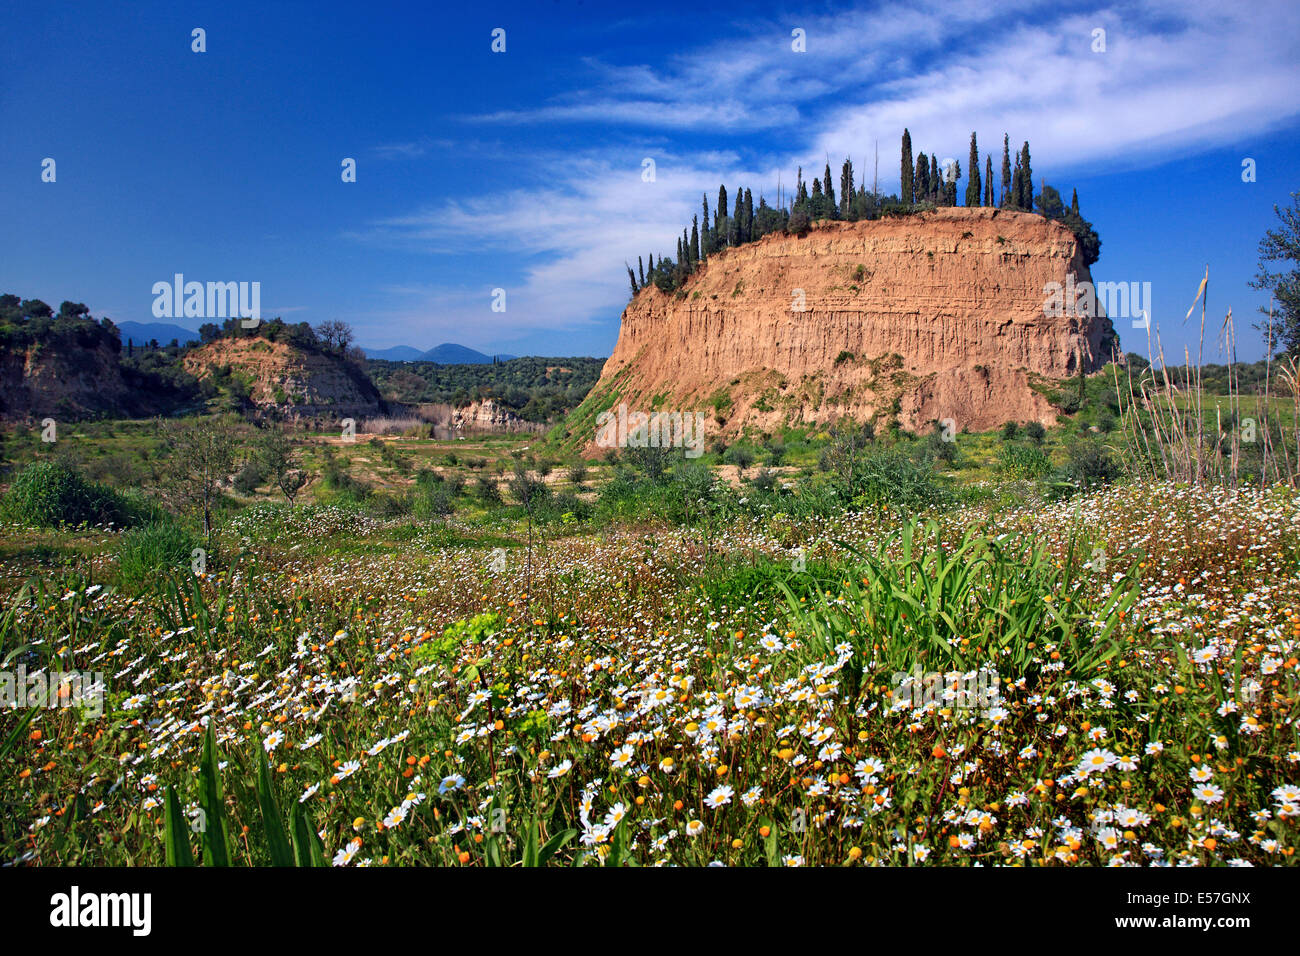 Landscape close to Amfithea village, Messene municipality, Messenia, Peloponnese, Greece. - Stock Image